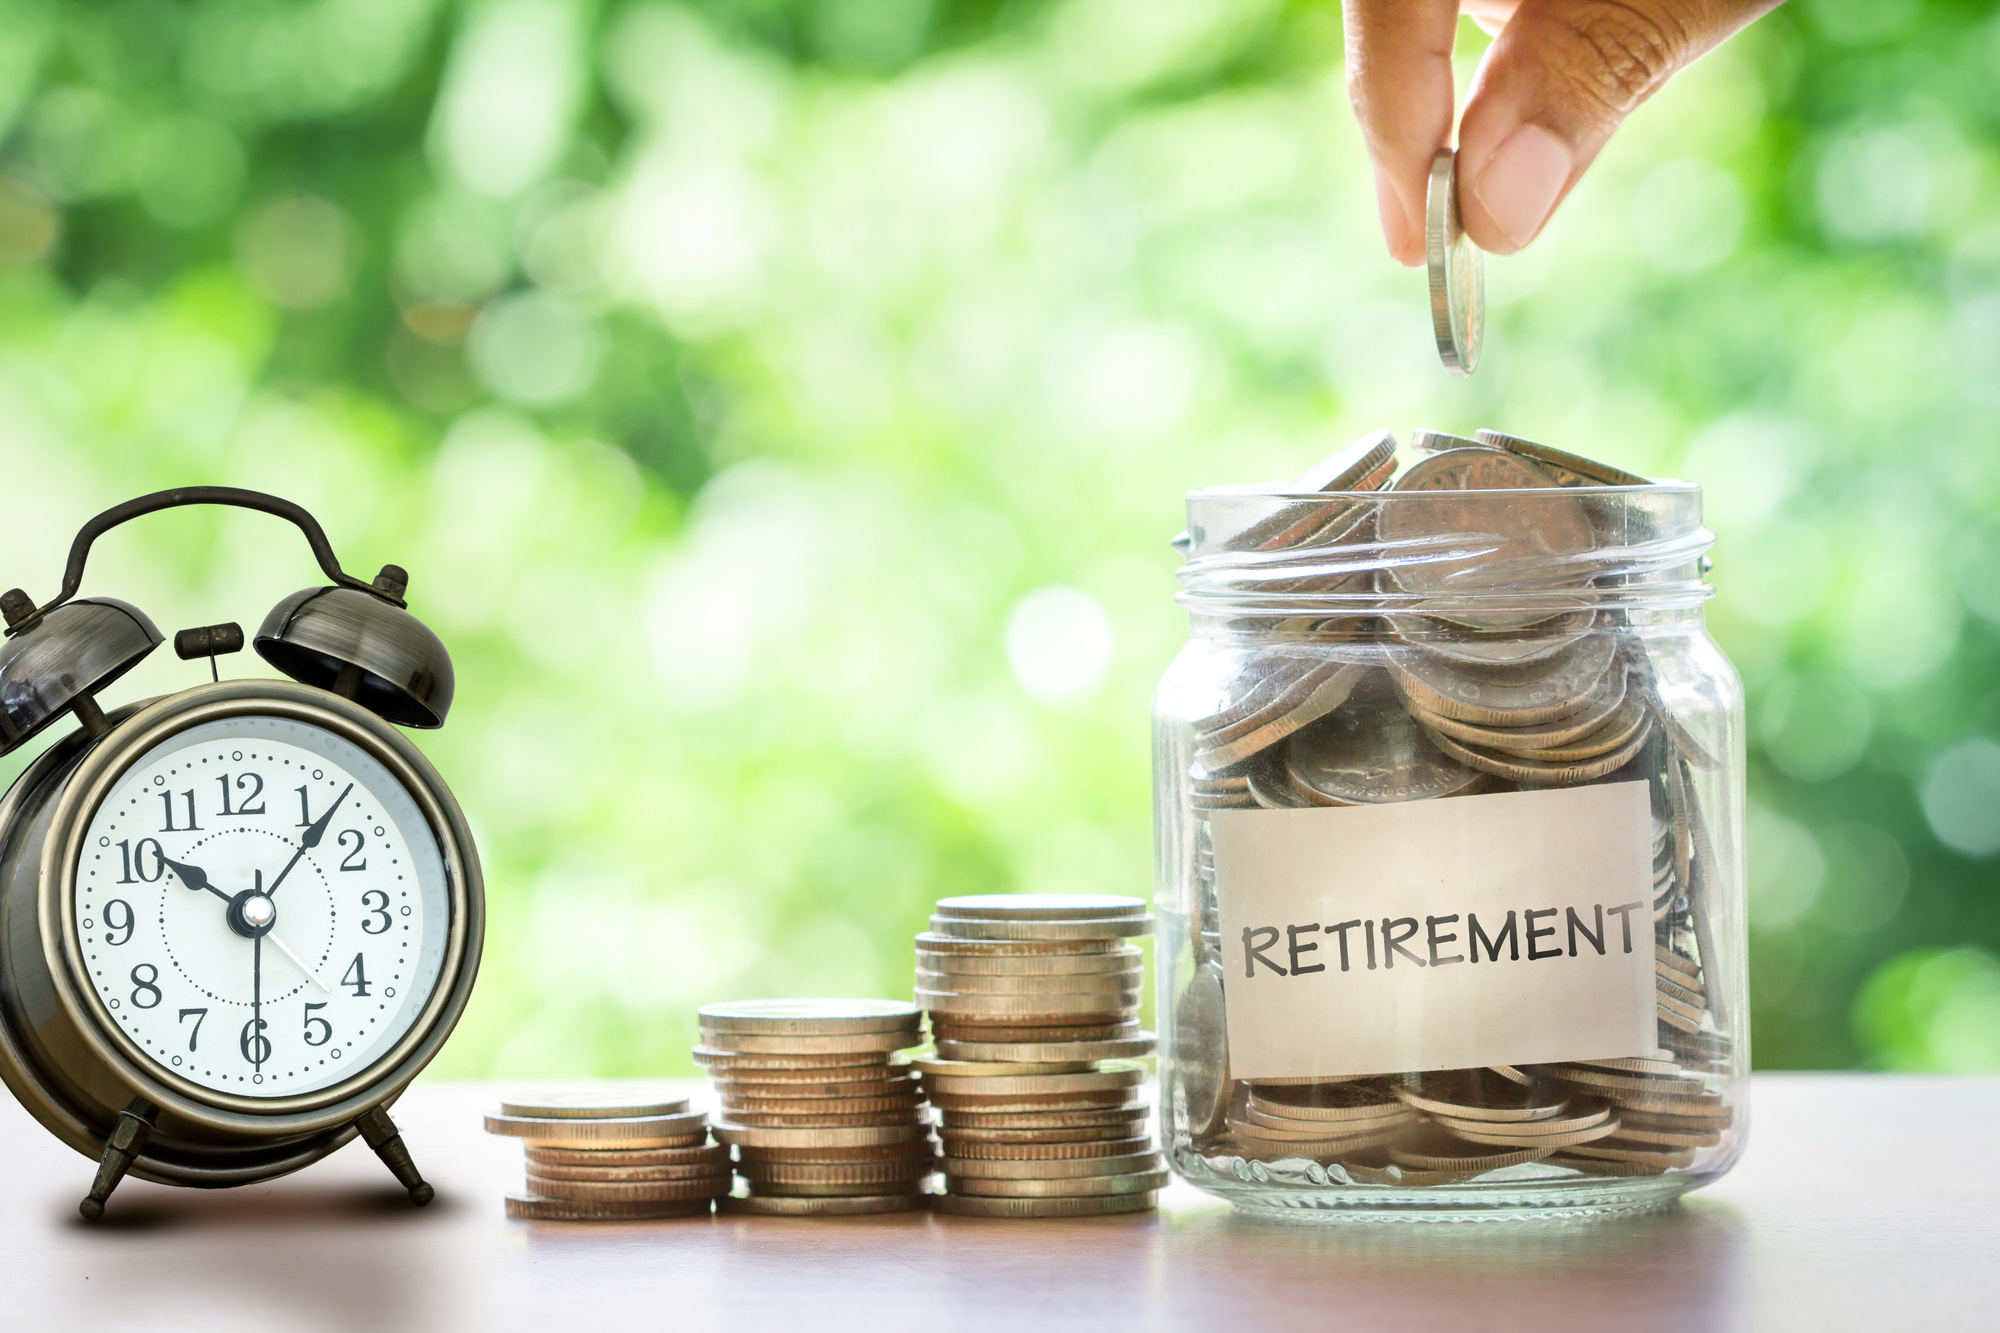 Learn How to Make More Money With This Easy Retirement Investment